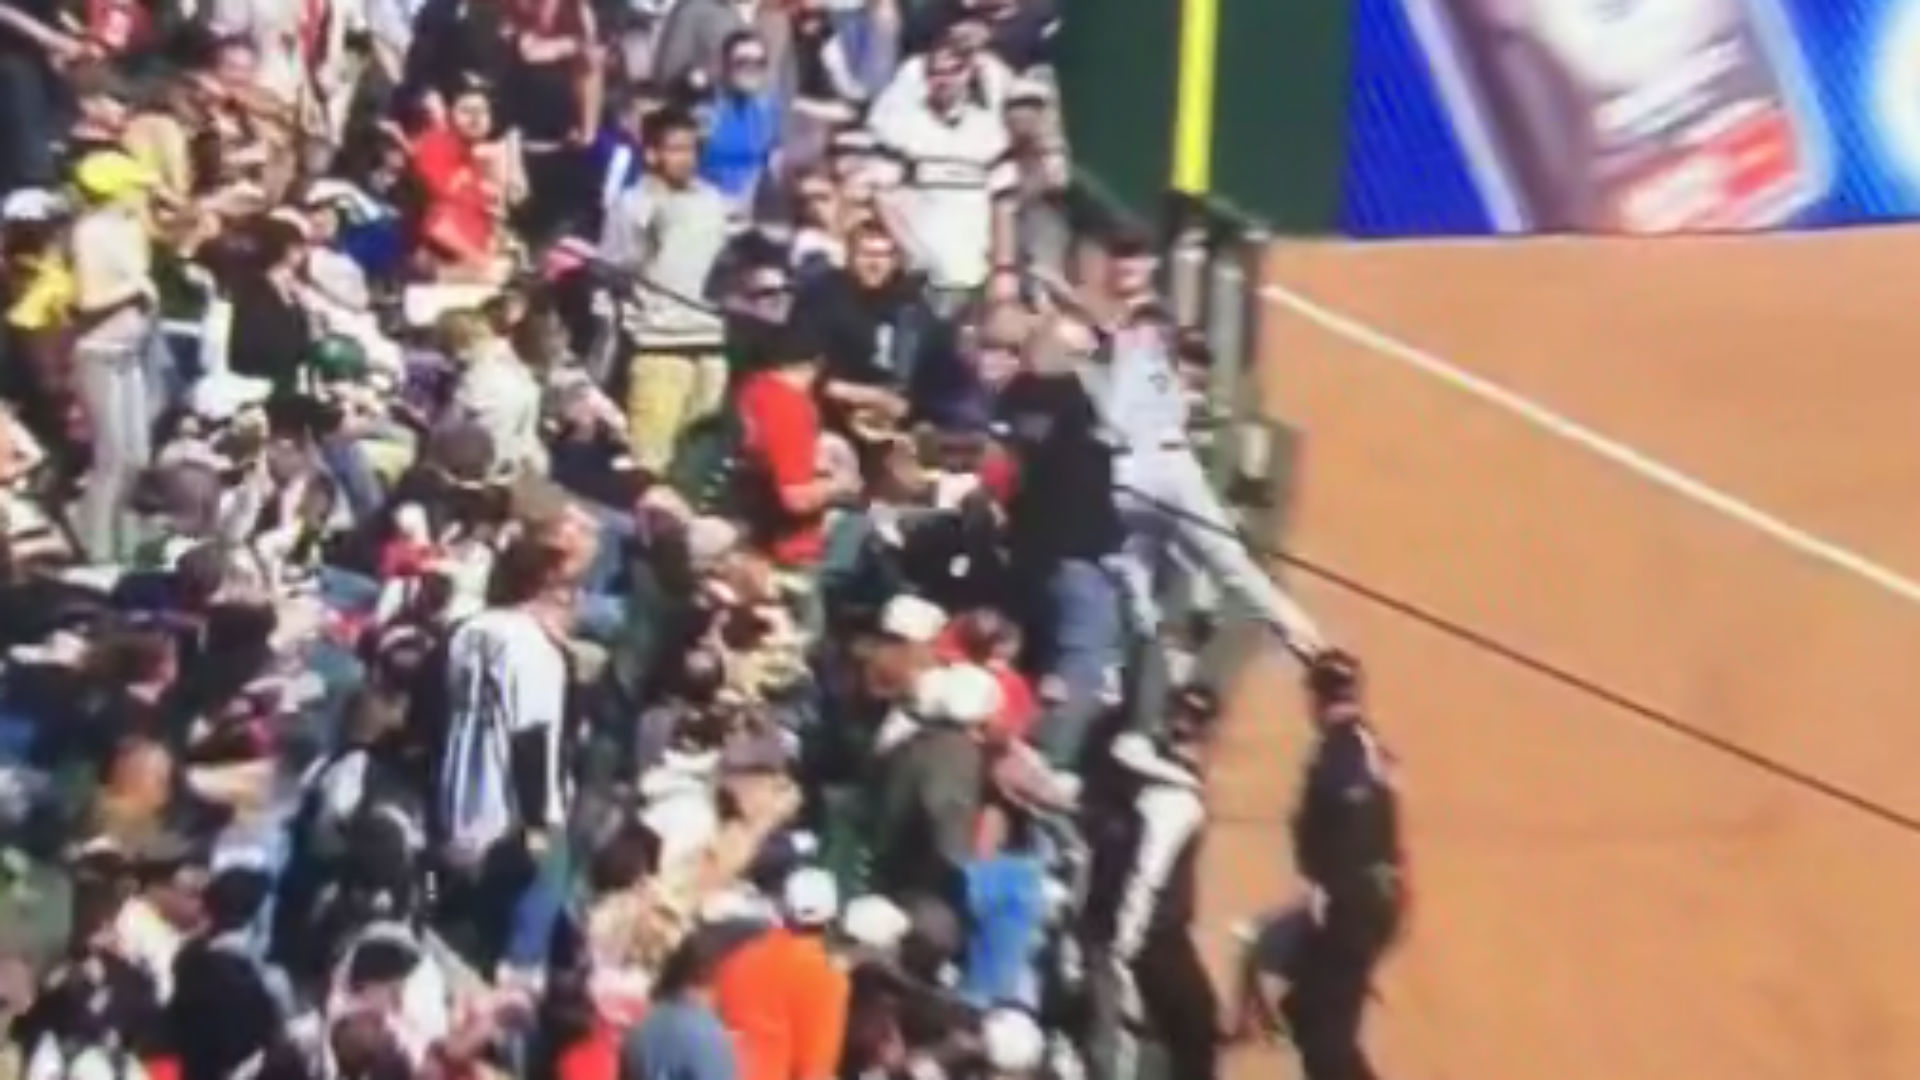 Alex Gordon dives into the stands to make an unbelievable catch